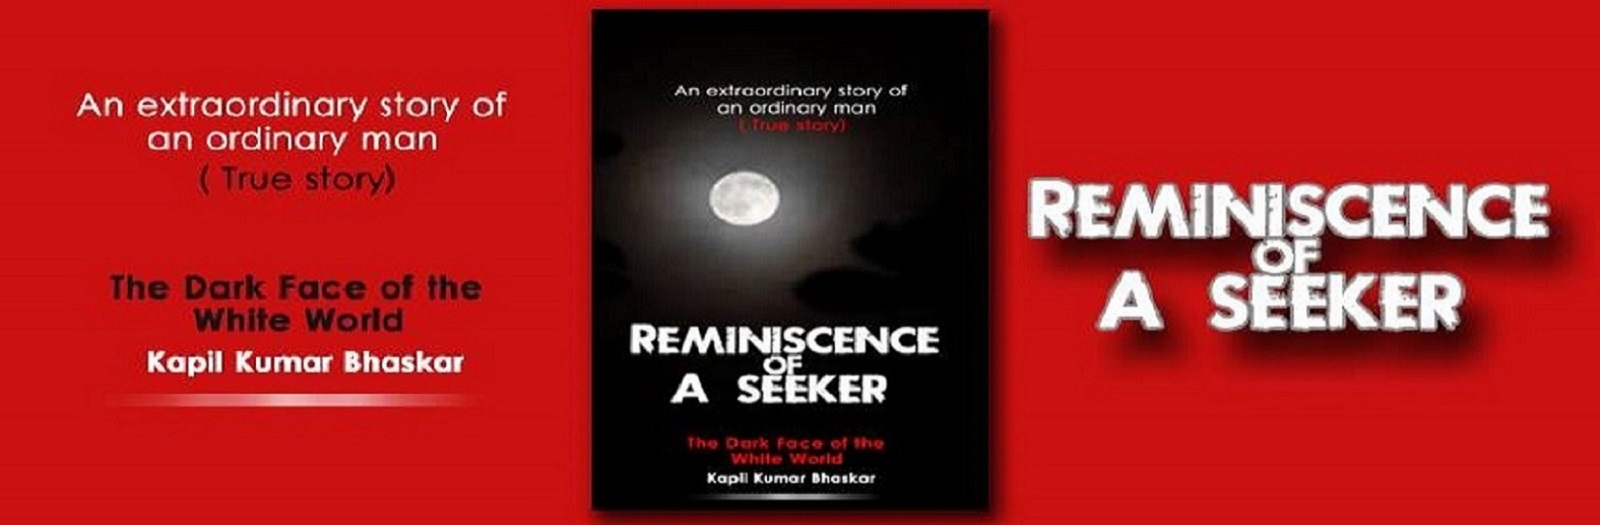 reminiscence-of-a-seeker